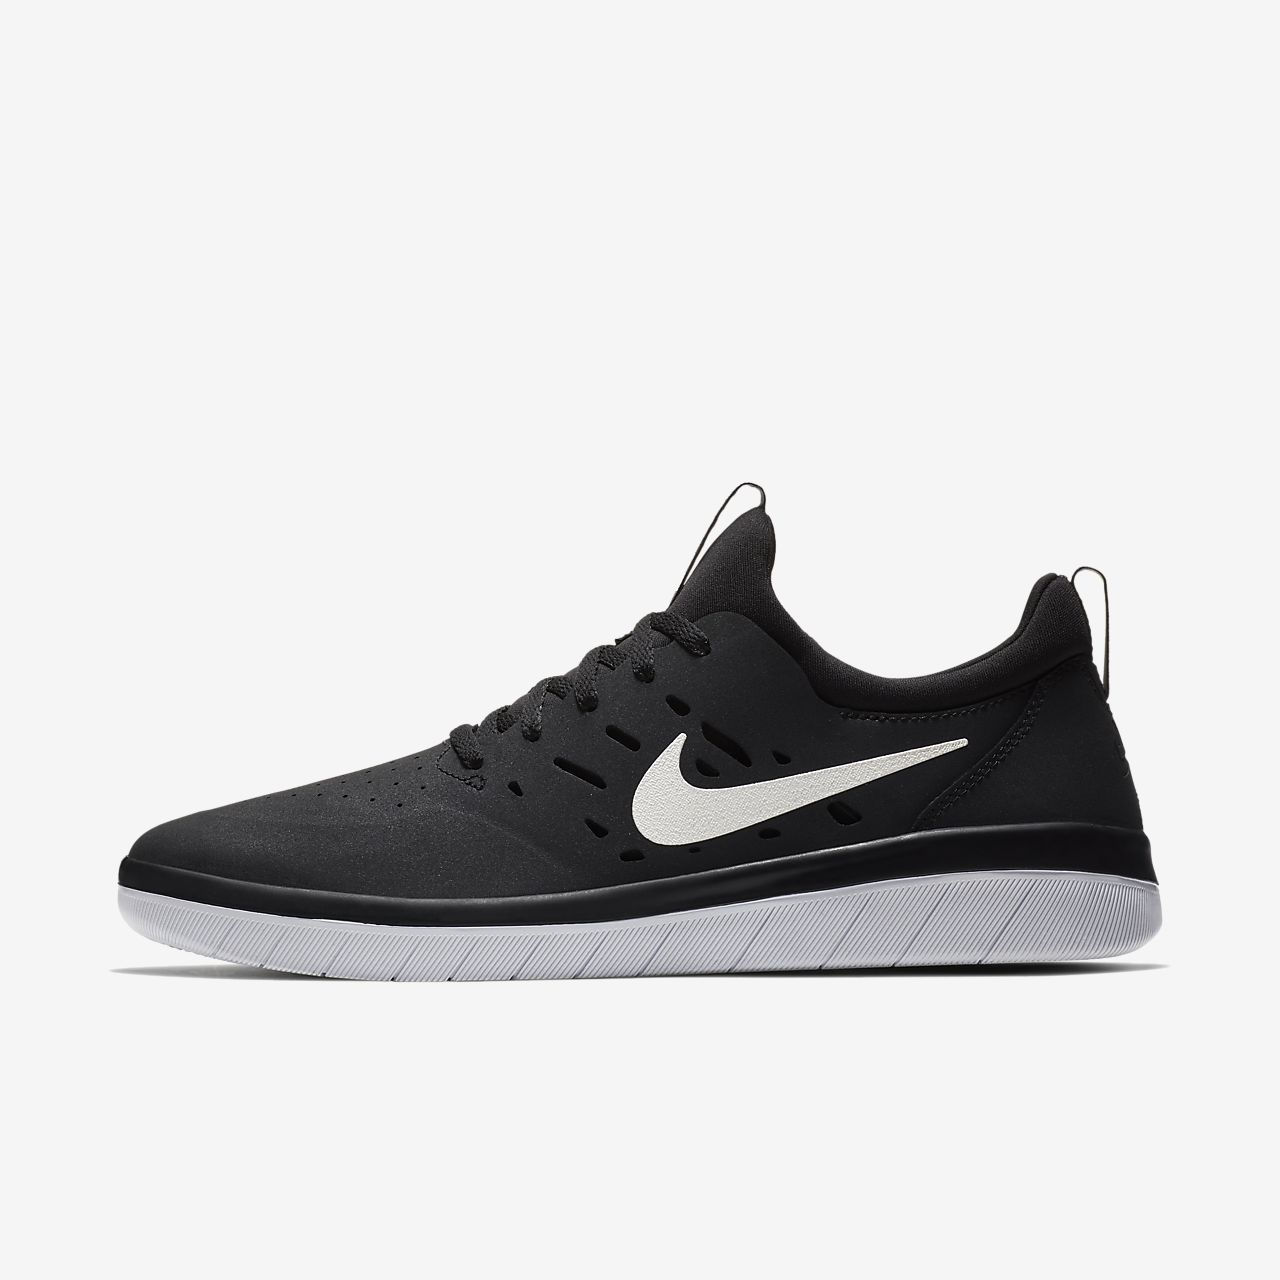 ... Nike SB Nyjah Men's Skateboarding Shoe